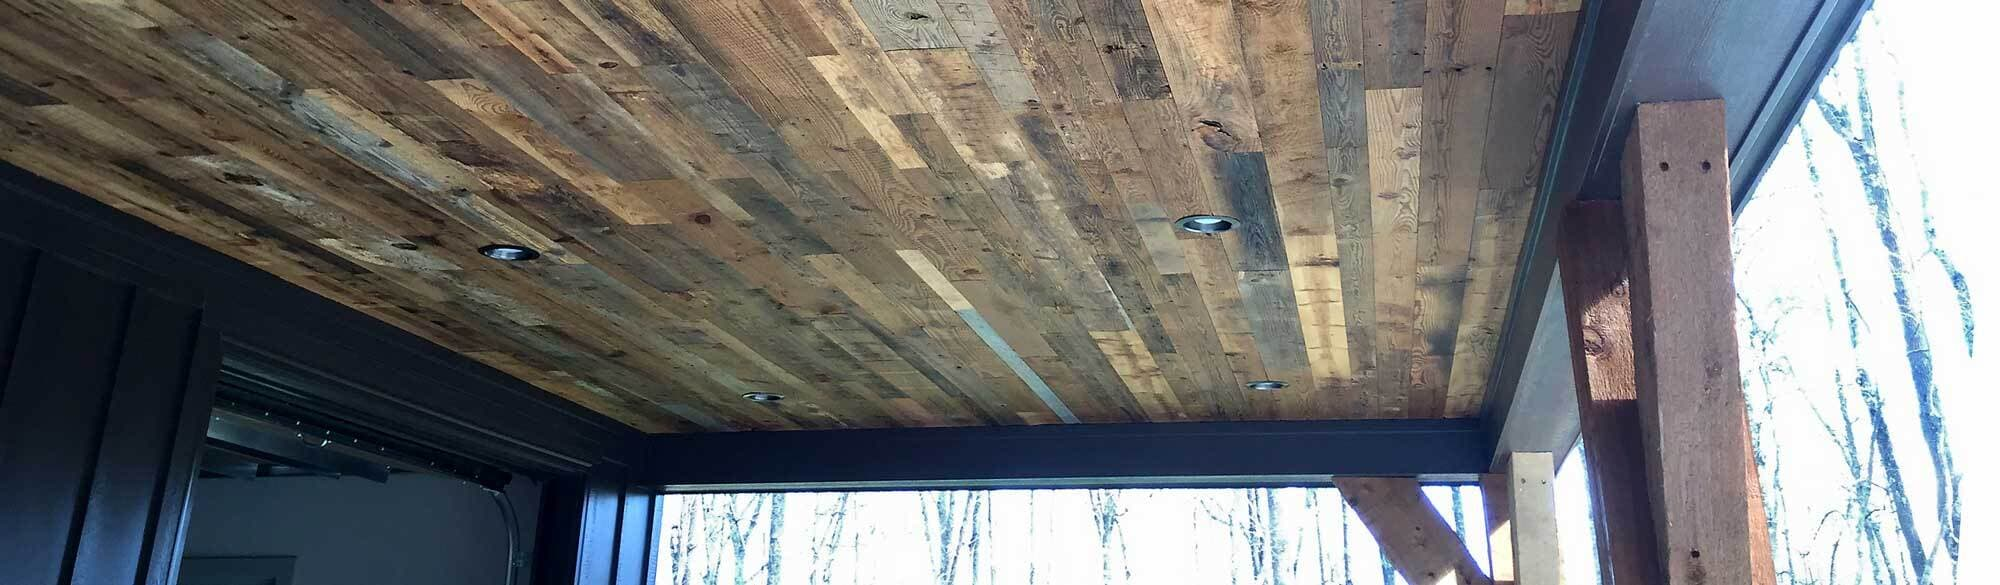 Reclaimed wood for rustic porch ceiling.